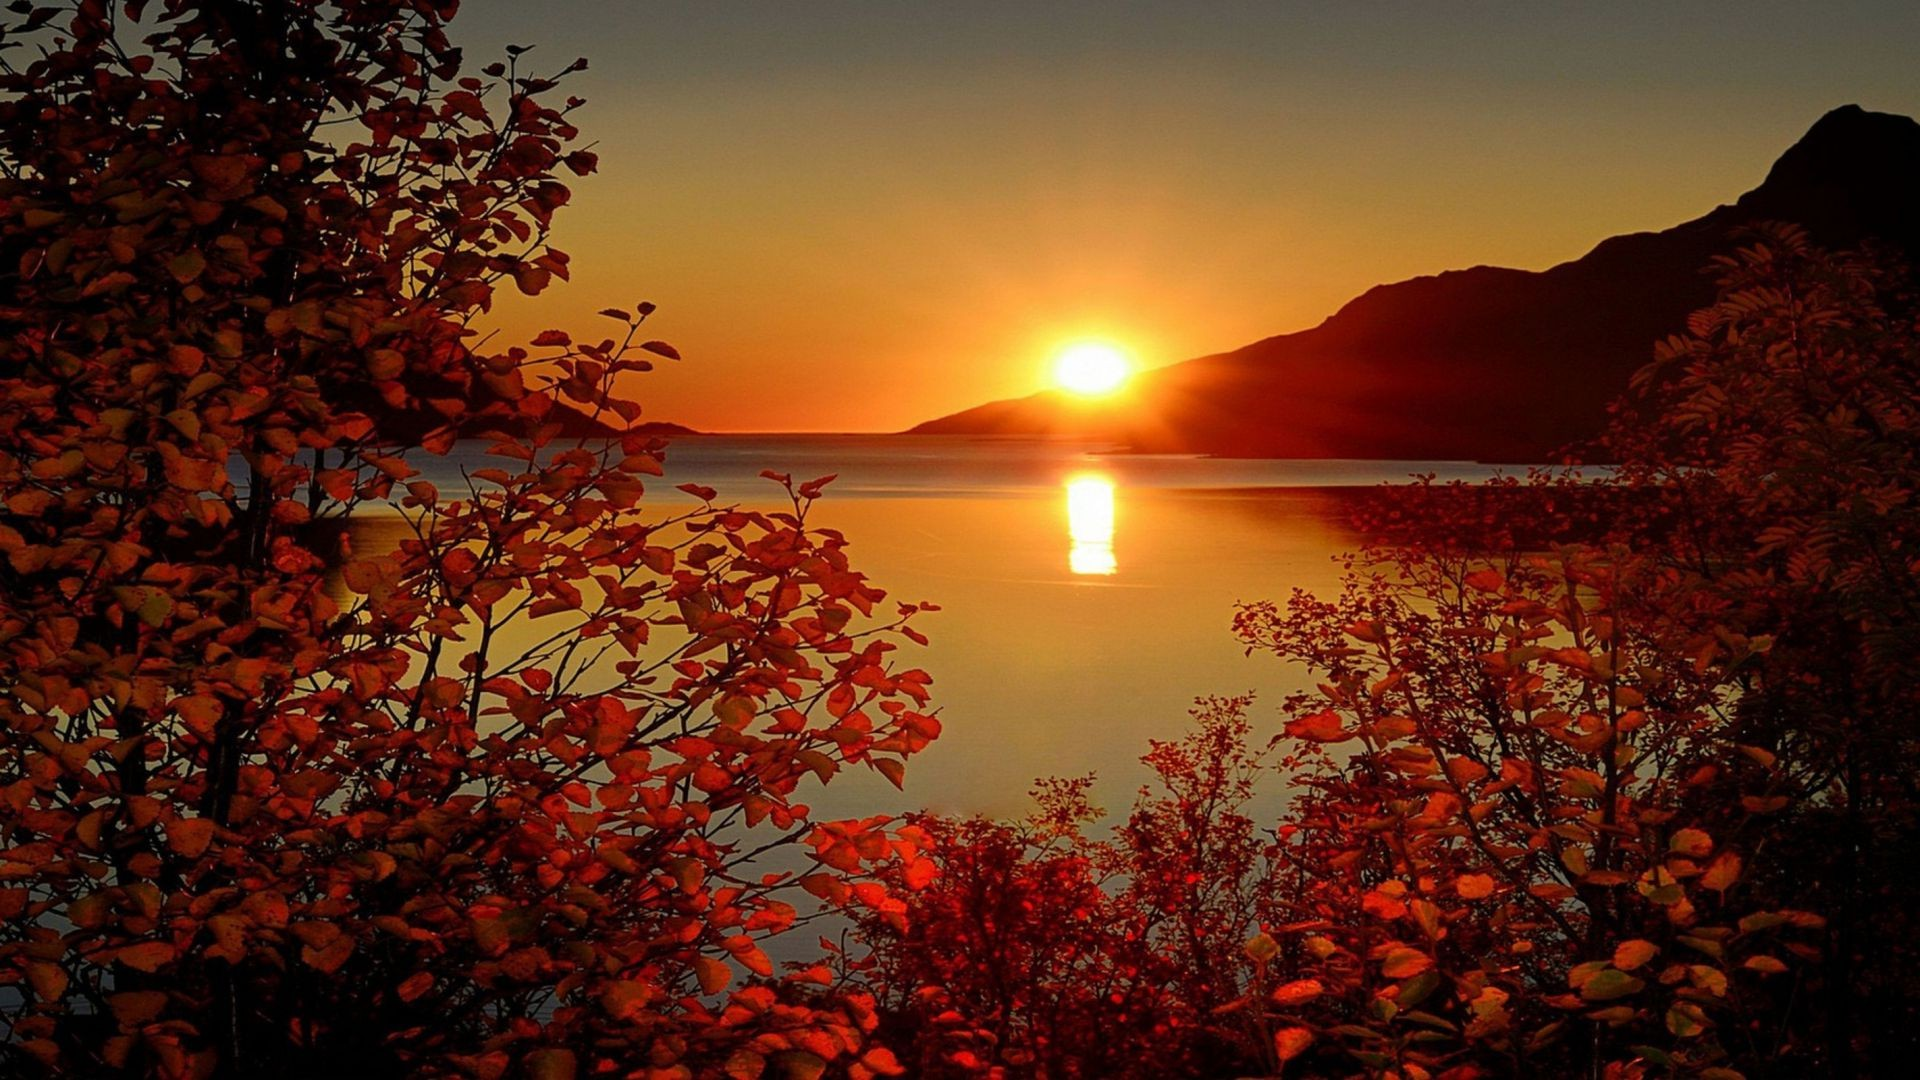 Autumn Sky Sun Sunset Rays Mountain Branches Leaves The